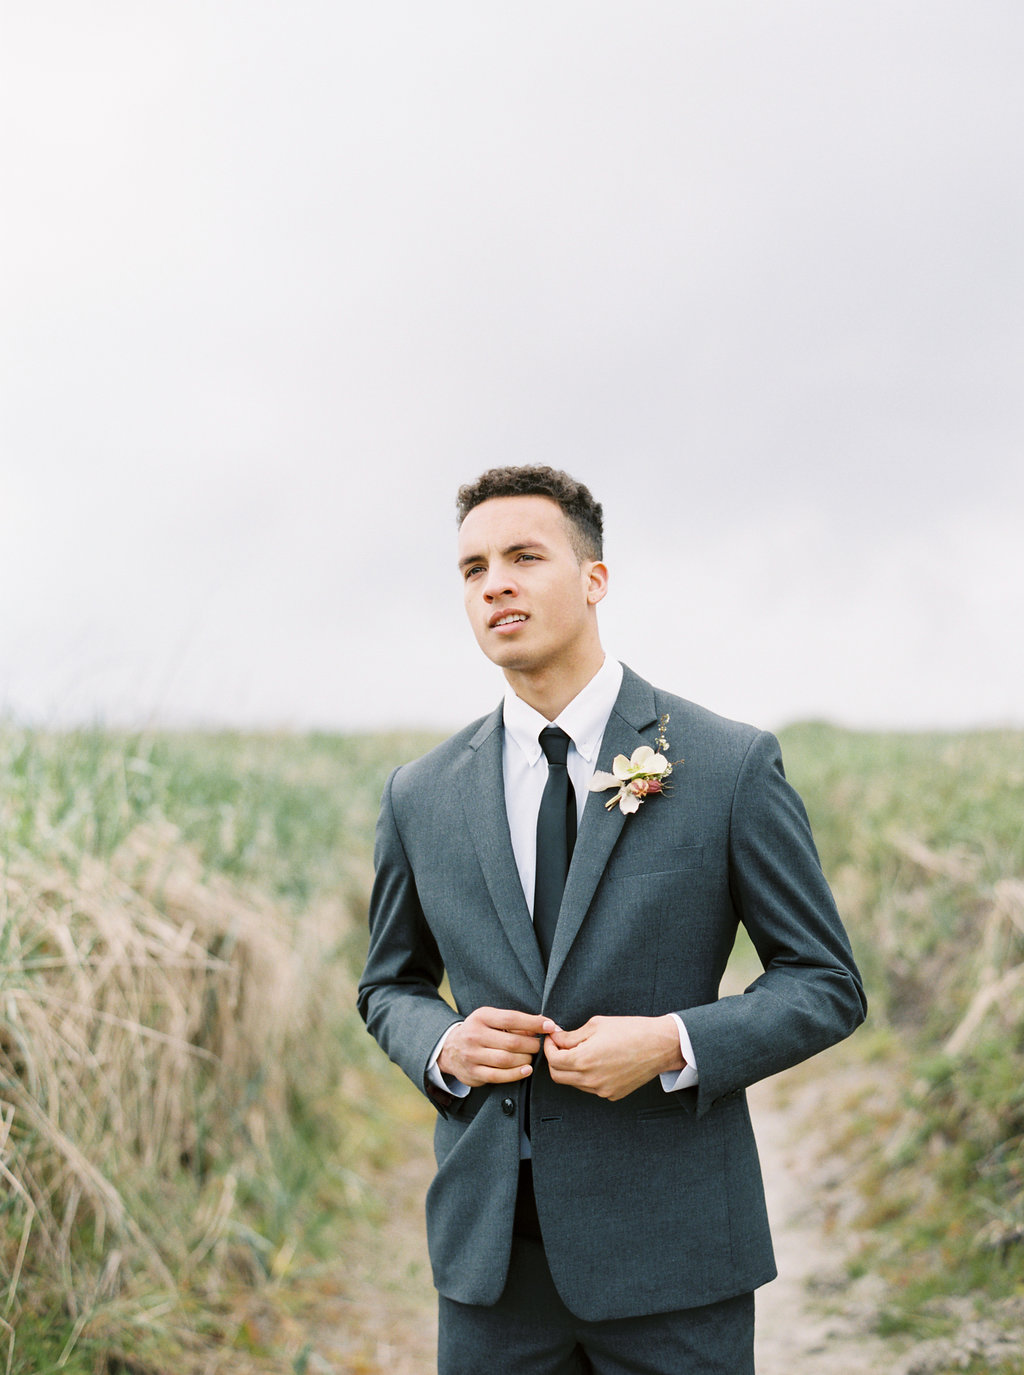 groom style - photo by Be Light Photography http://ruffledblog.com/coastal-oregon-inspiration-with-a-show-stopping-wedding-gown